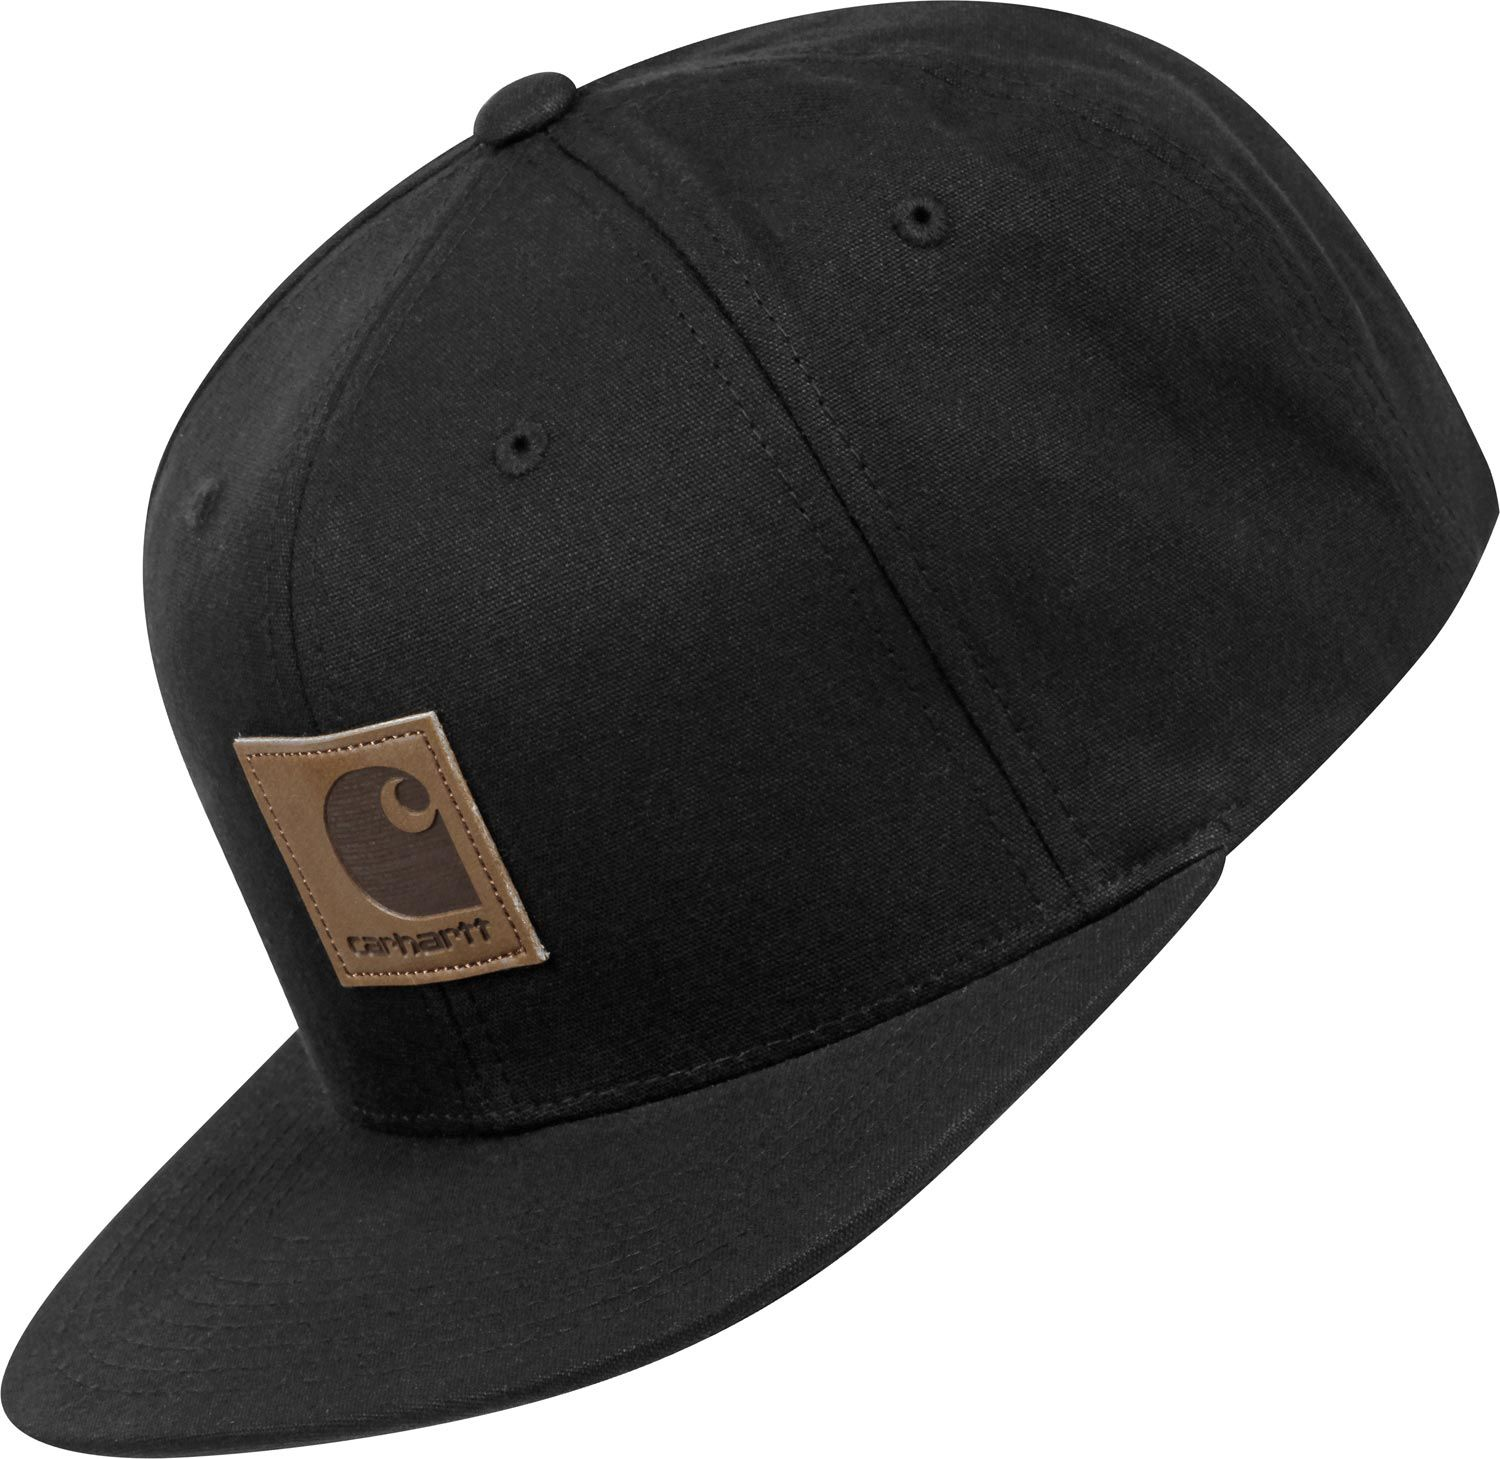 174a4282c21198 carhartt cap | Wish List in 2019 | Hats, Carhartt, Carhartt cap